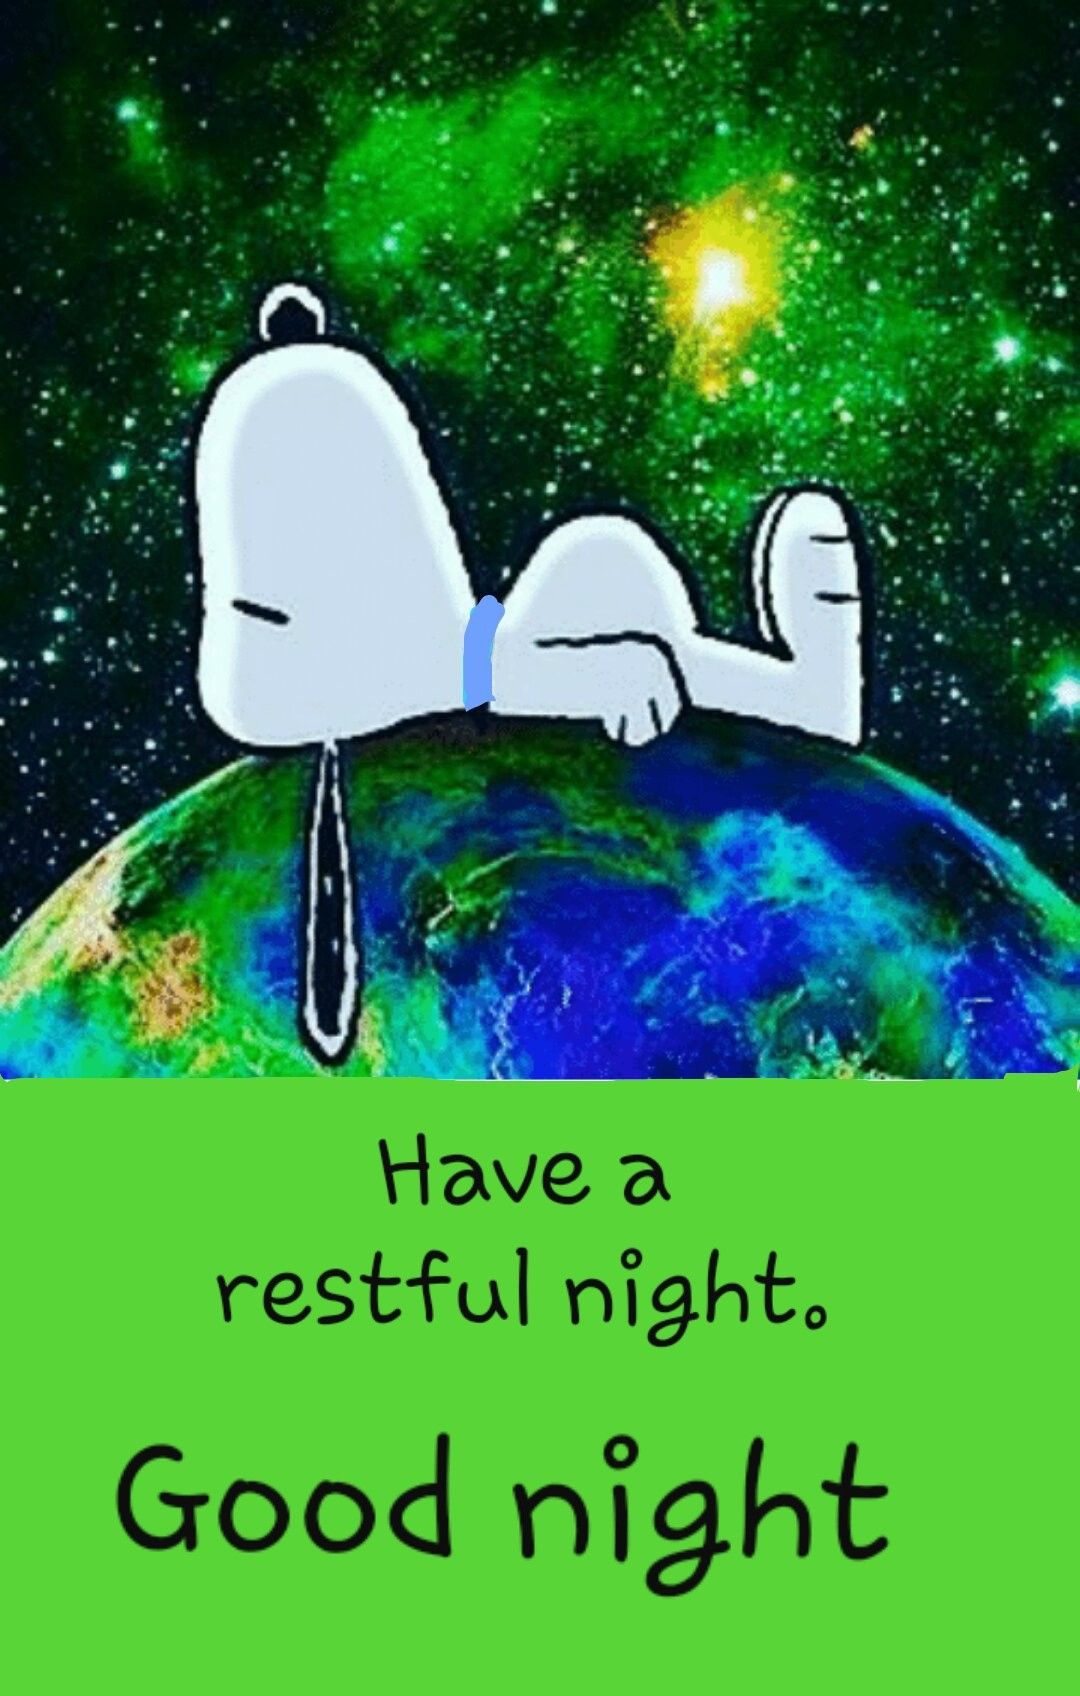 Restful Sleep Good Night! | Goodnight snoopy, Snoopy quotes ...